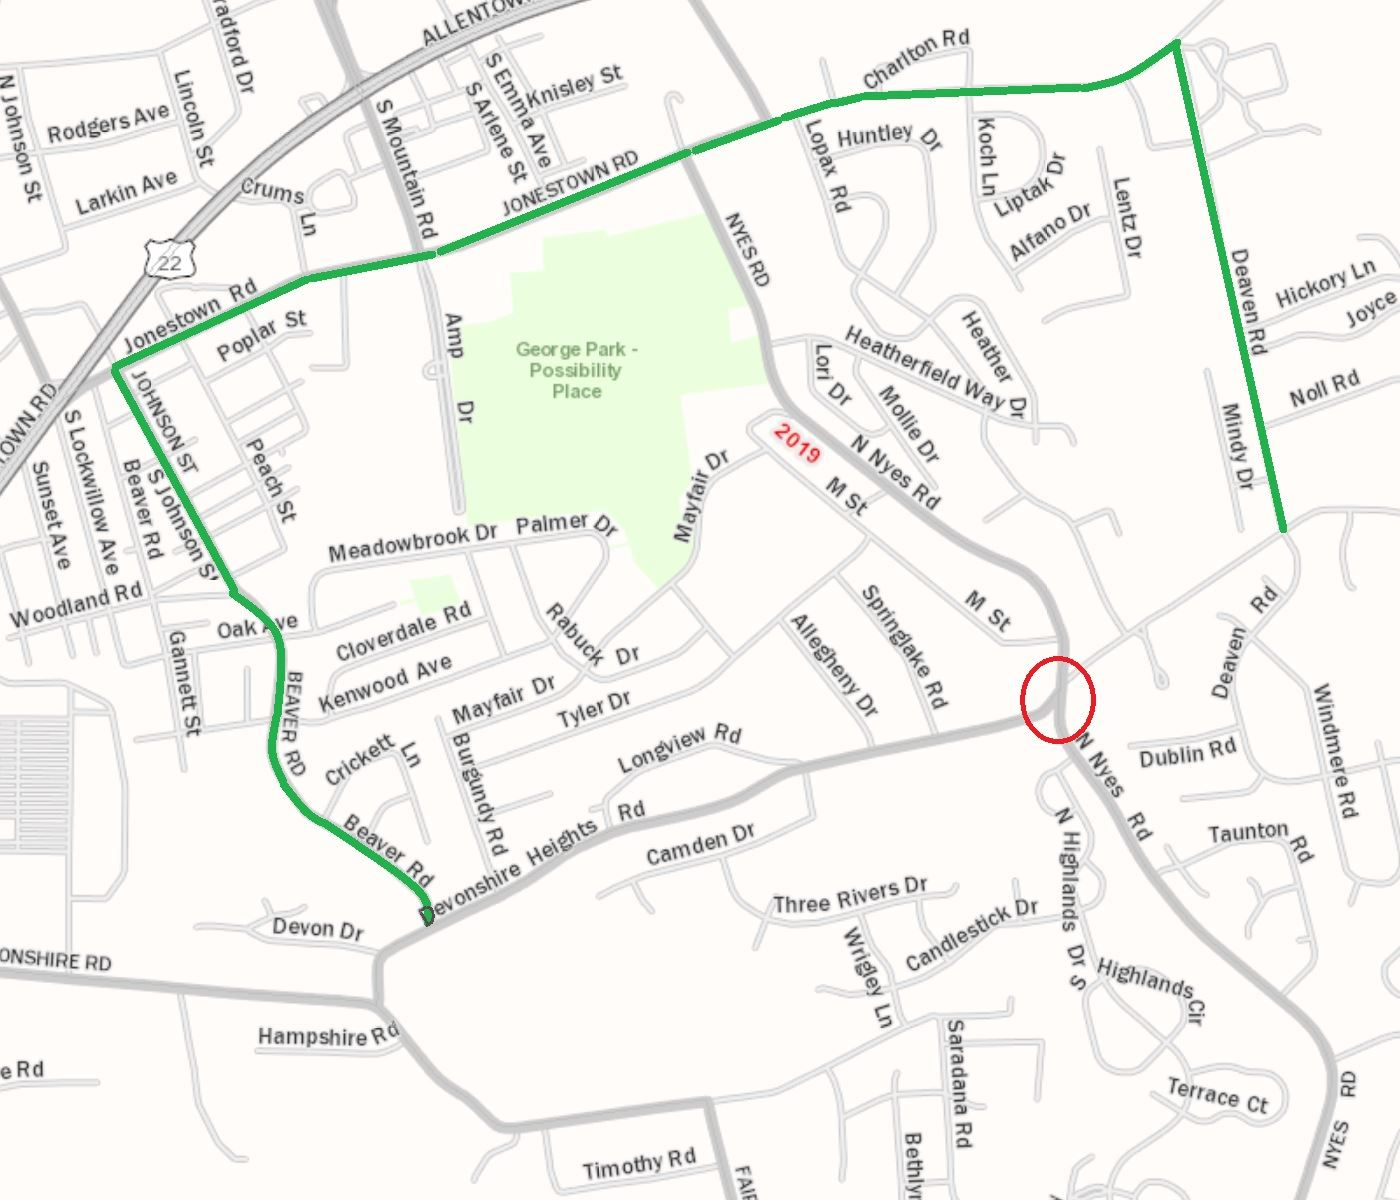 Devonshire Heights Road Detour May 2020